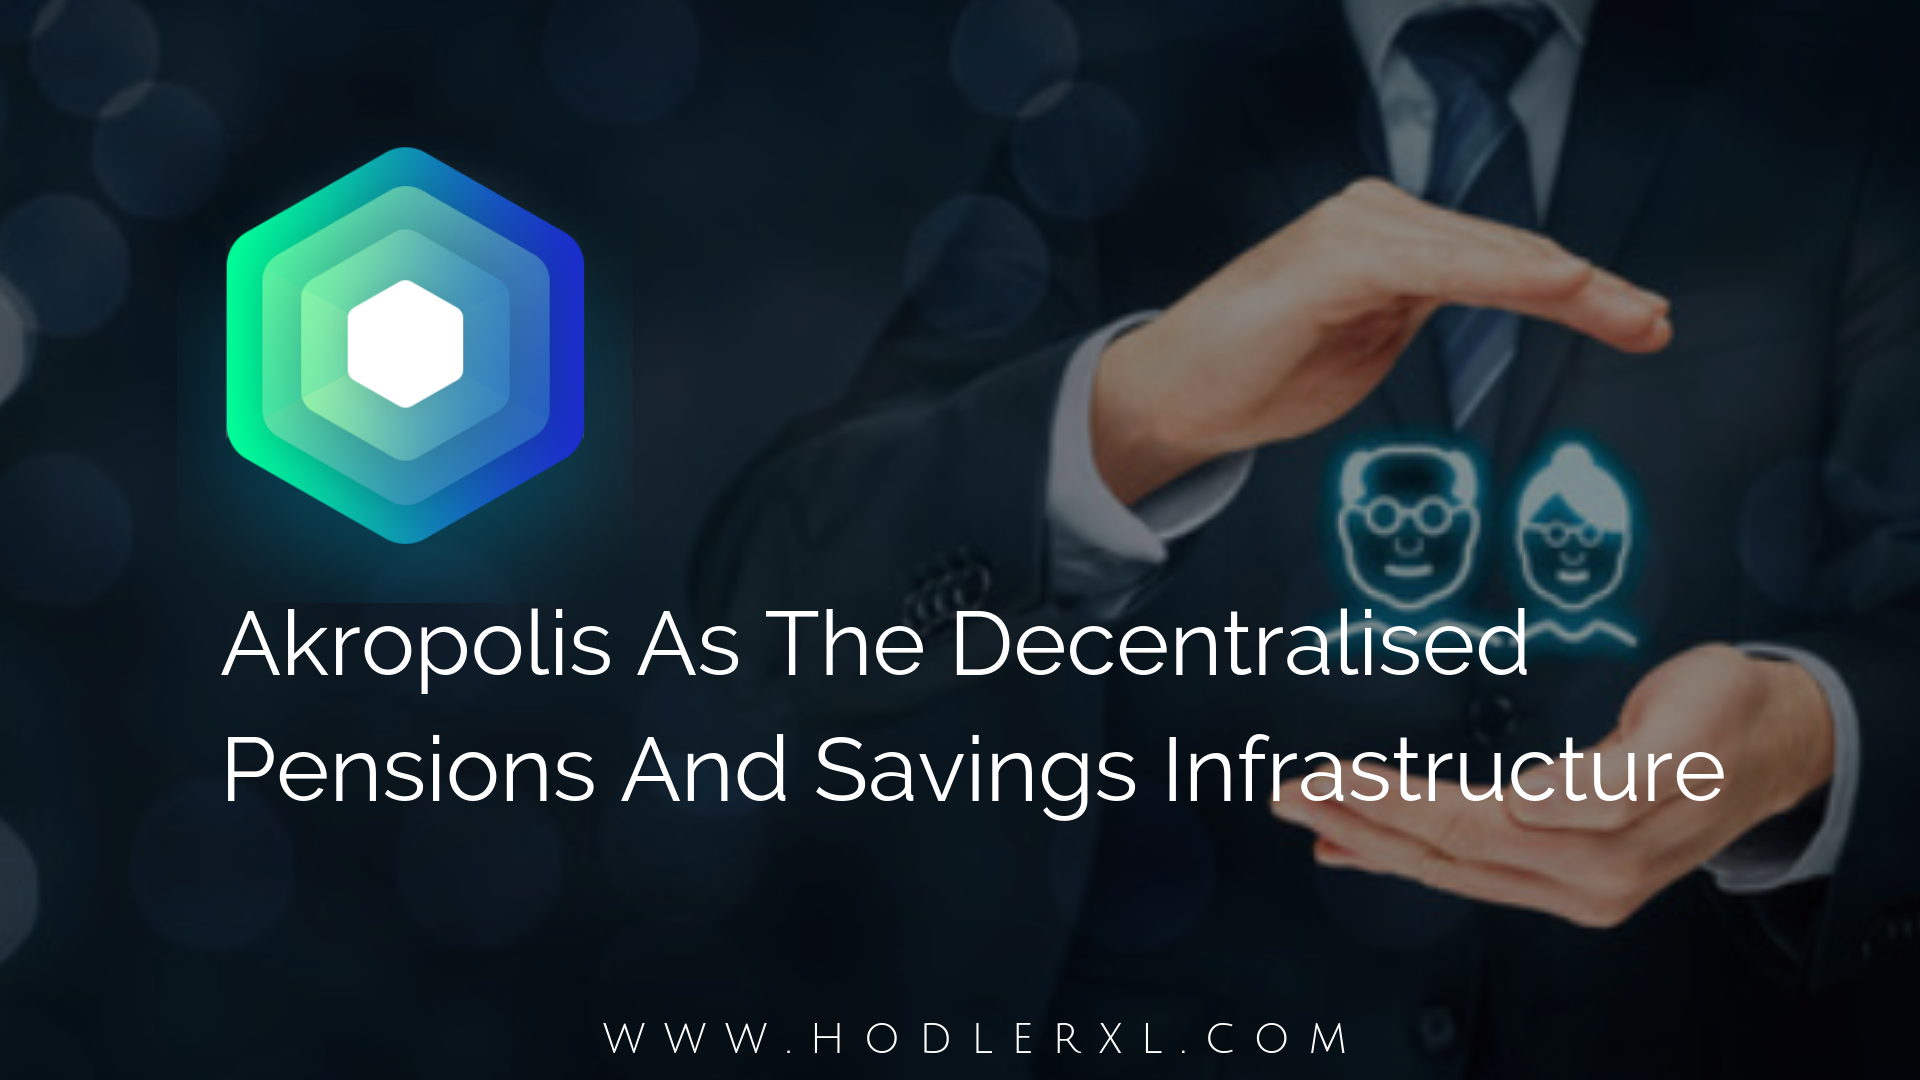 Akropolis As The Decentralised Pensions And Savings Infrastructure